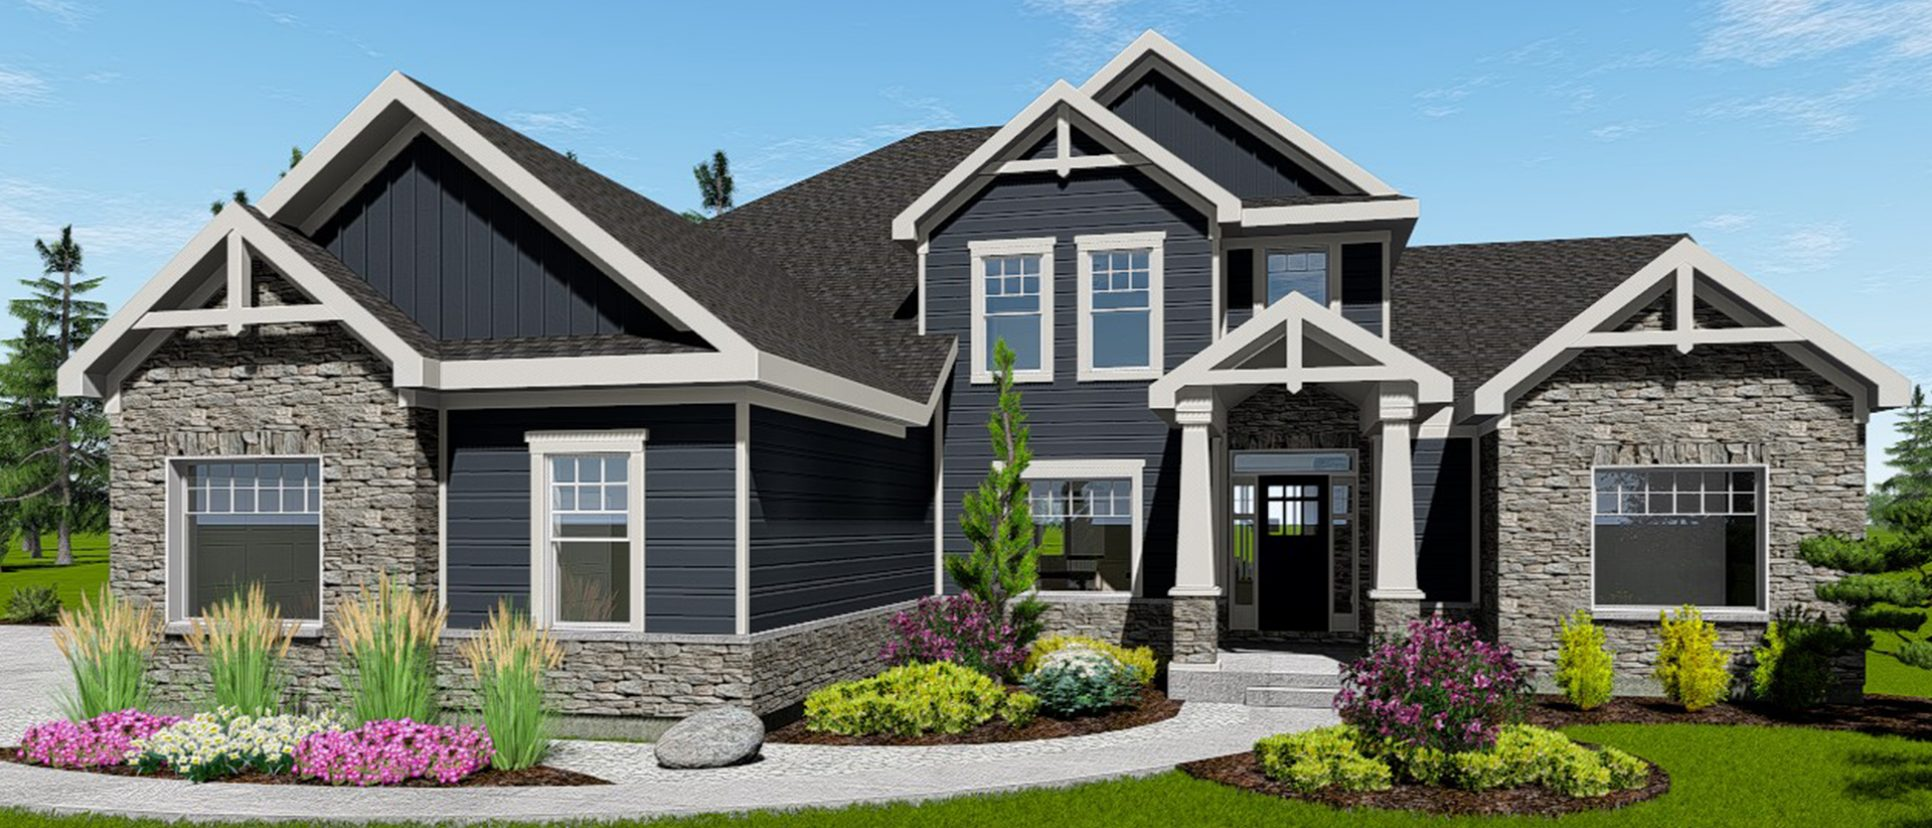 Custom exterior of the Triple Crown in Cypress Ridge. By Design Homes & Development.